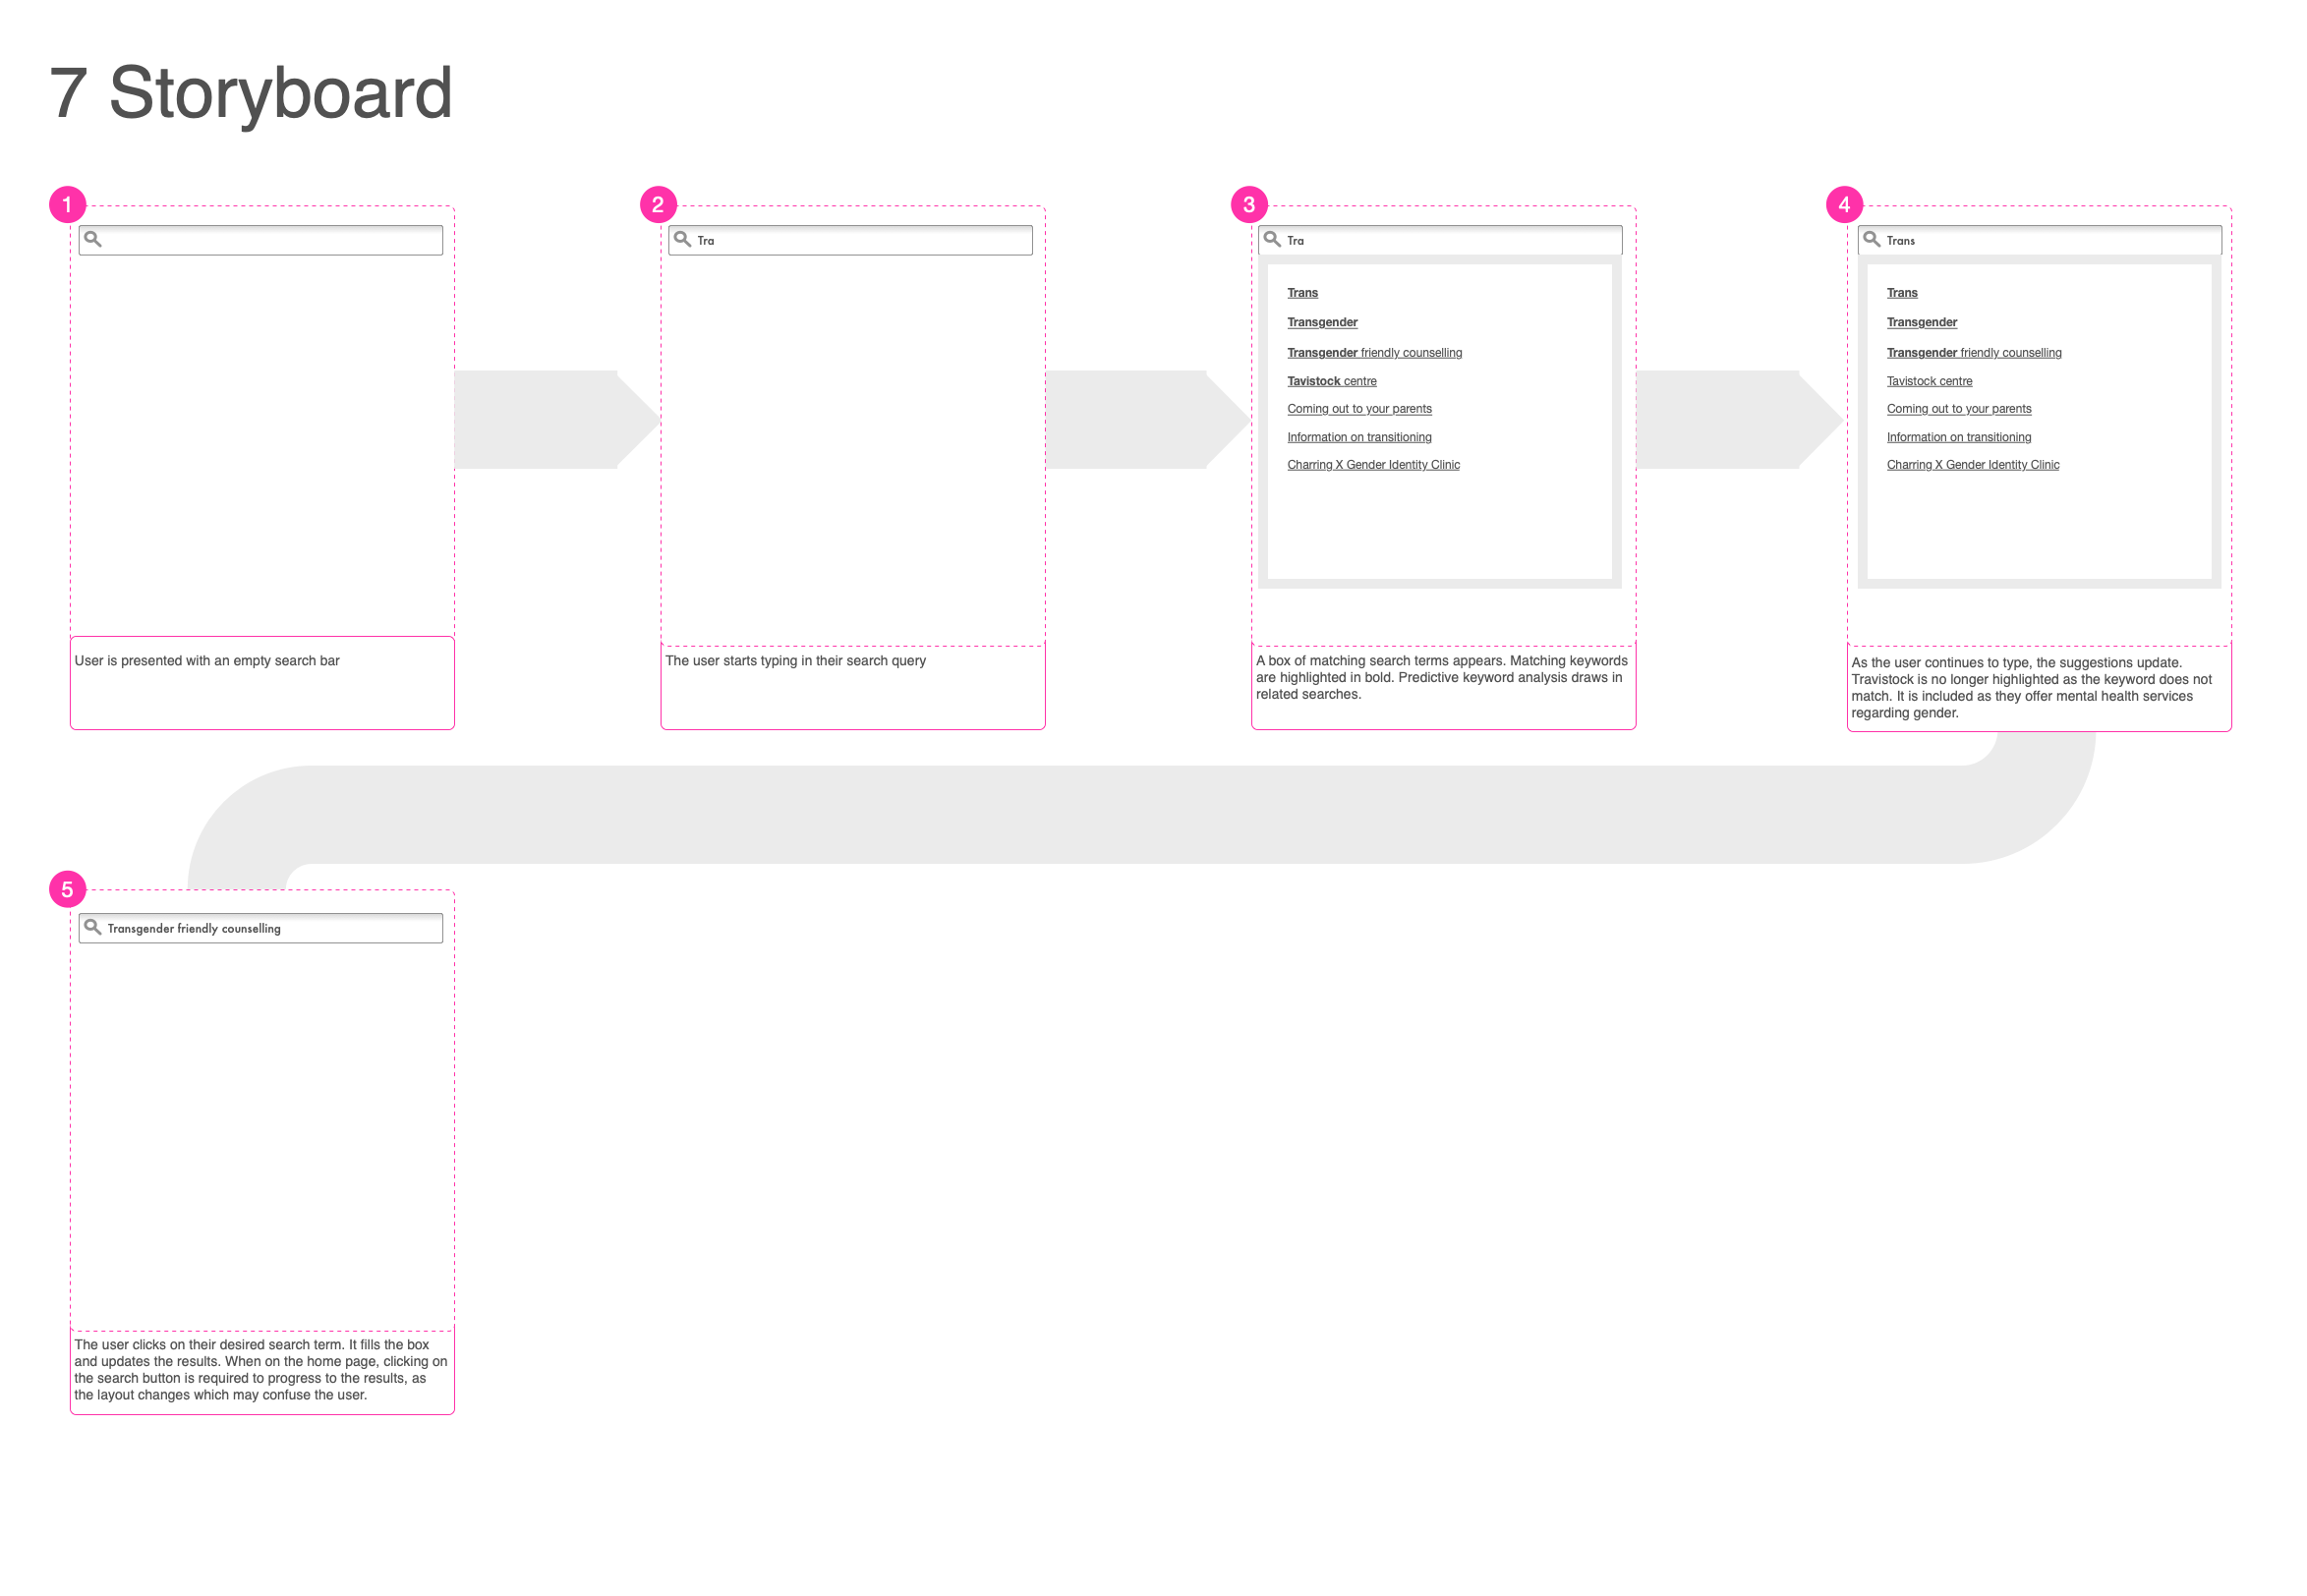 Storyboard which depicts how the search flow functions